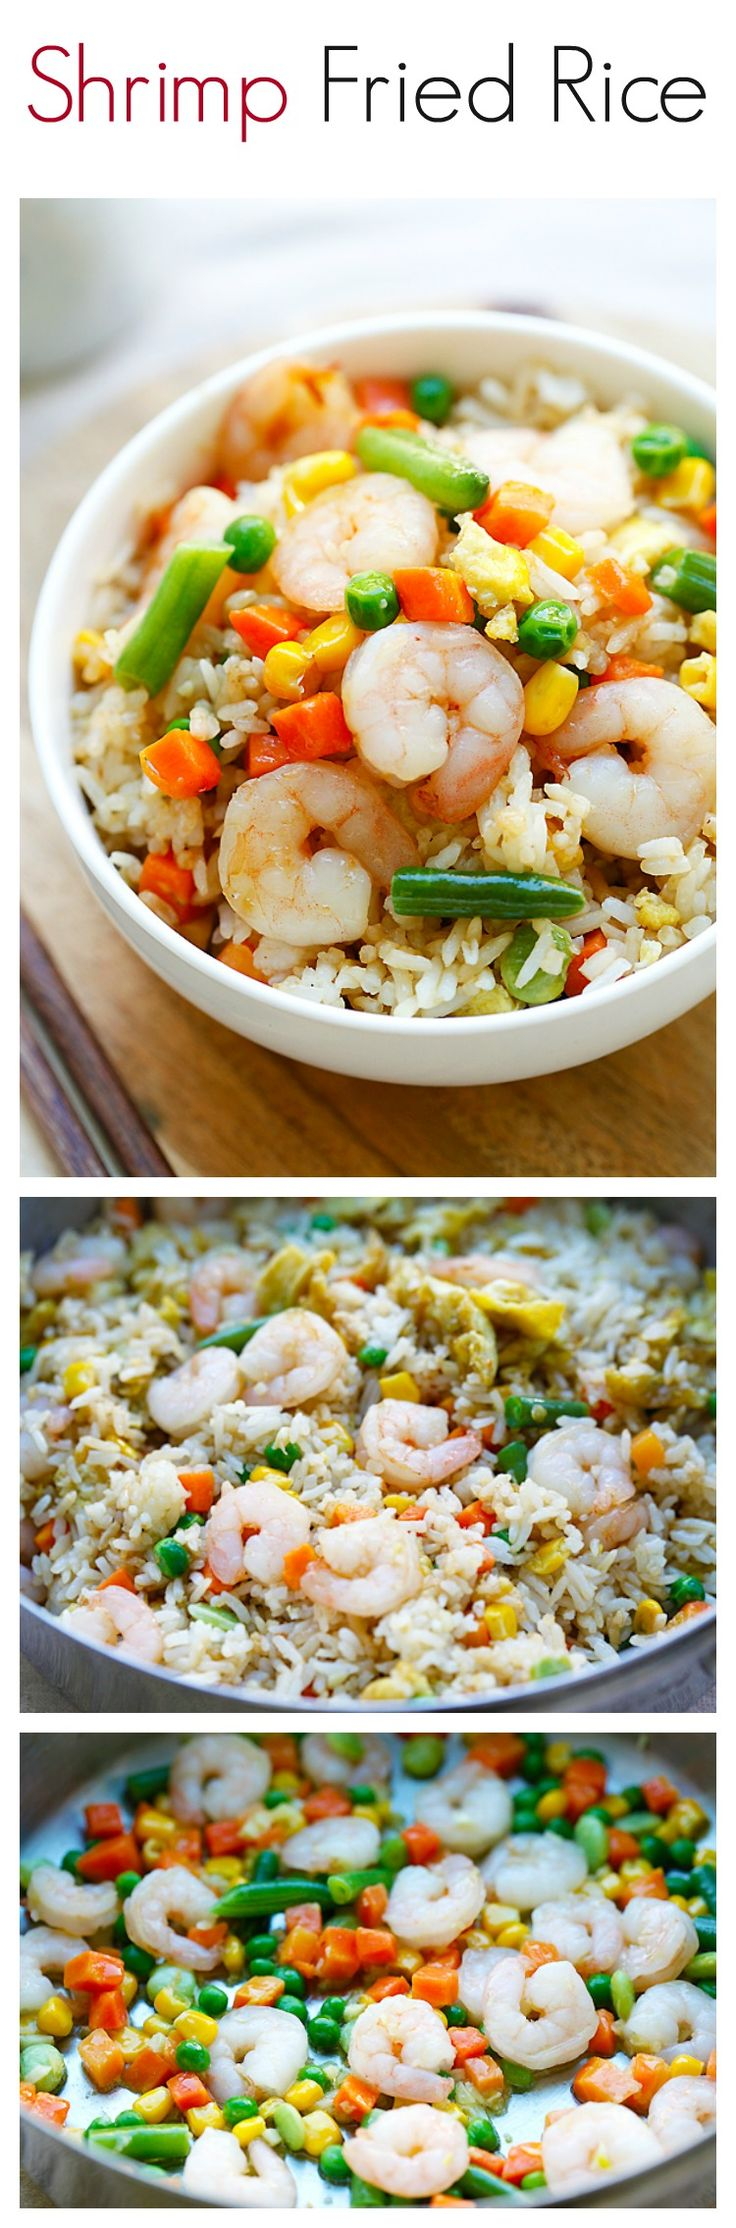 Shrimp fried rice – the easiest shrimp fried rice recipe that takes only 20 mins from prep to dinner table. Healthier & much better than Chinese takeouts | rasamalaysia.com